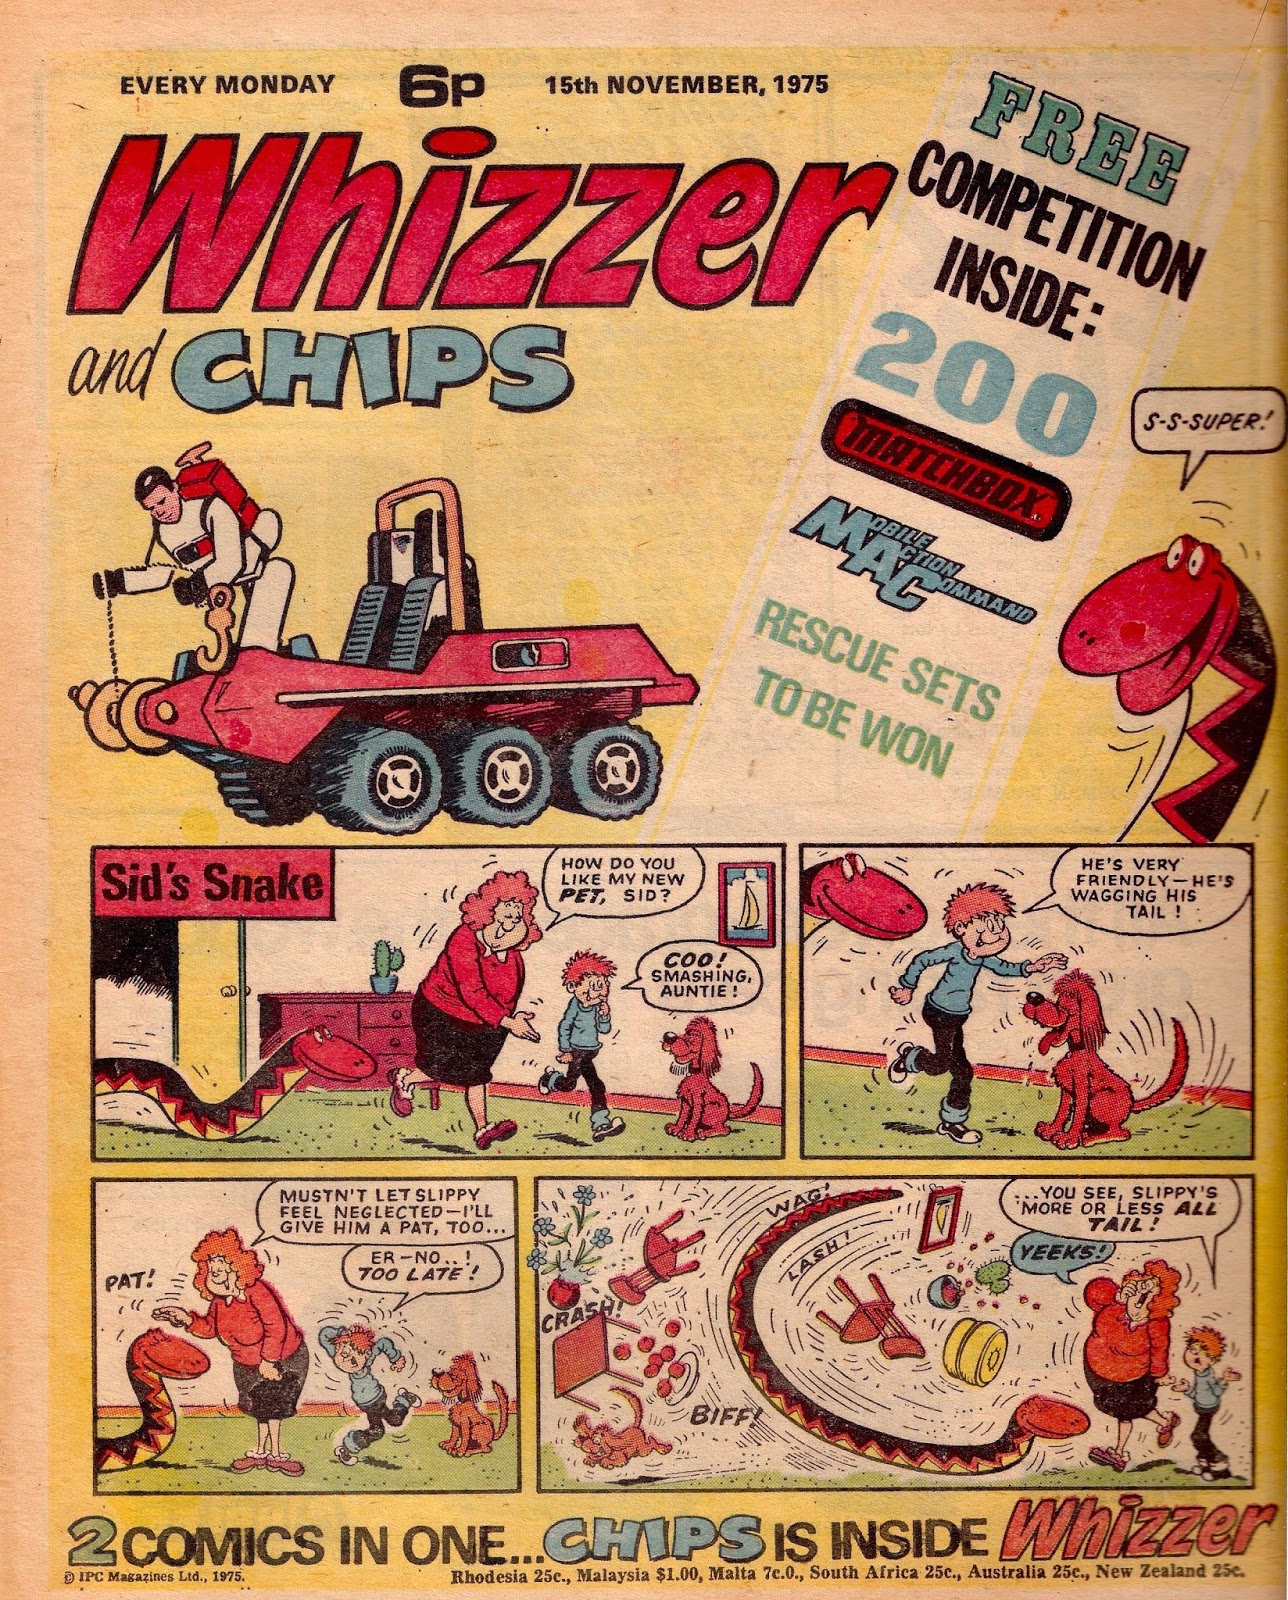 whizzer+chips+front.jpeg